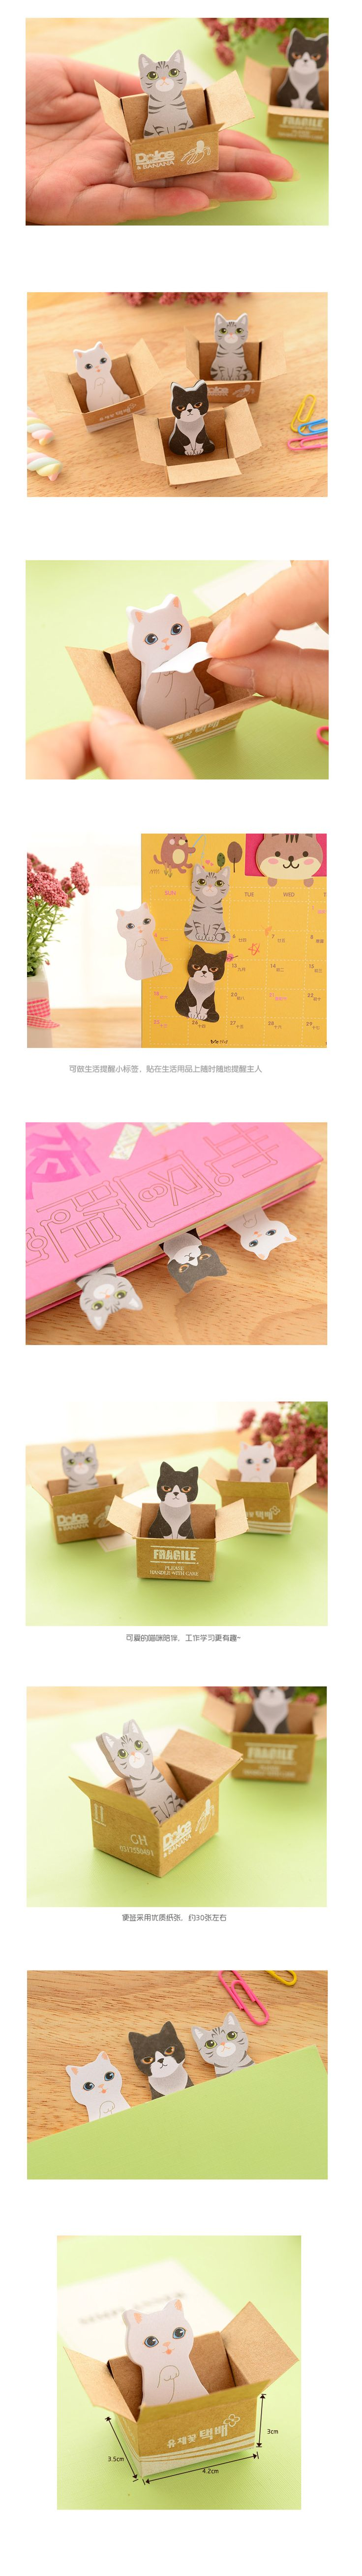 3D Gato Dos Desenhos Animados Kawaii Papel Scrapbooking Adesivos Cão Bonito Coreano Papelaria Material Escolar Diário Postá lo Memo Pad Sticky Notes em Almofadas de memorando de Office & School Suprimentos no AliExpress.com | Alibaba Group